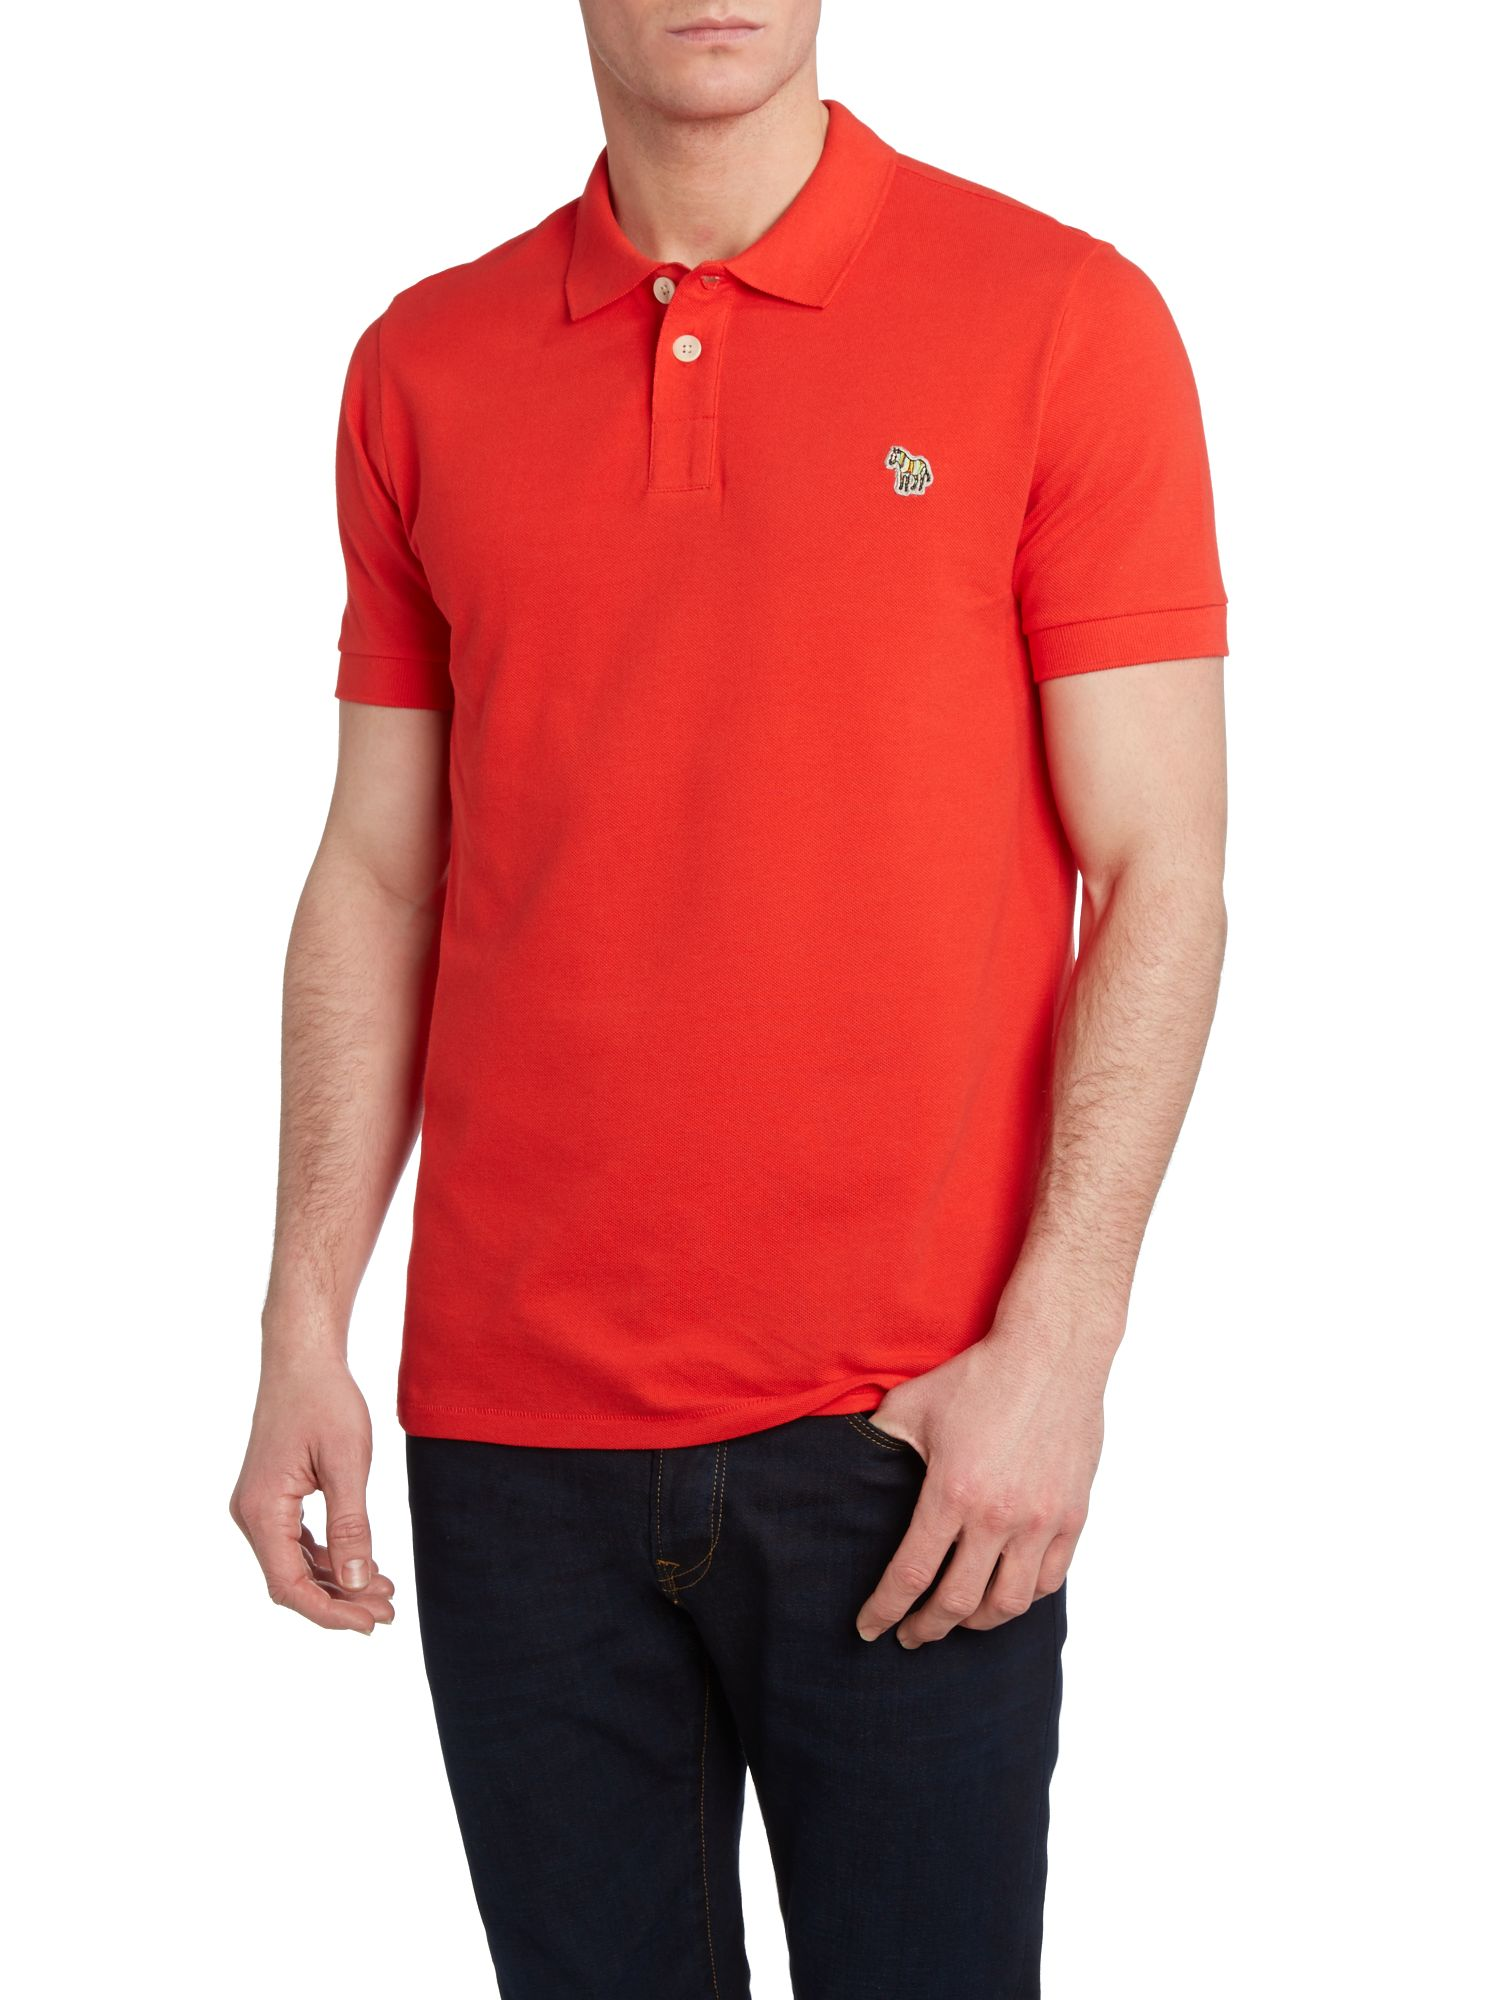 Regular fit zebra polo shirt